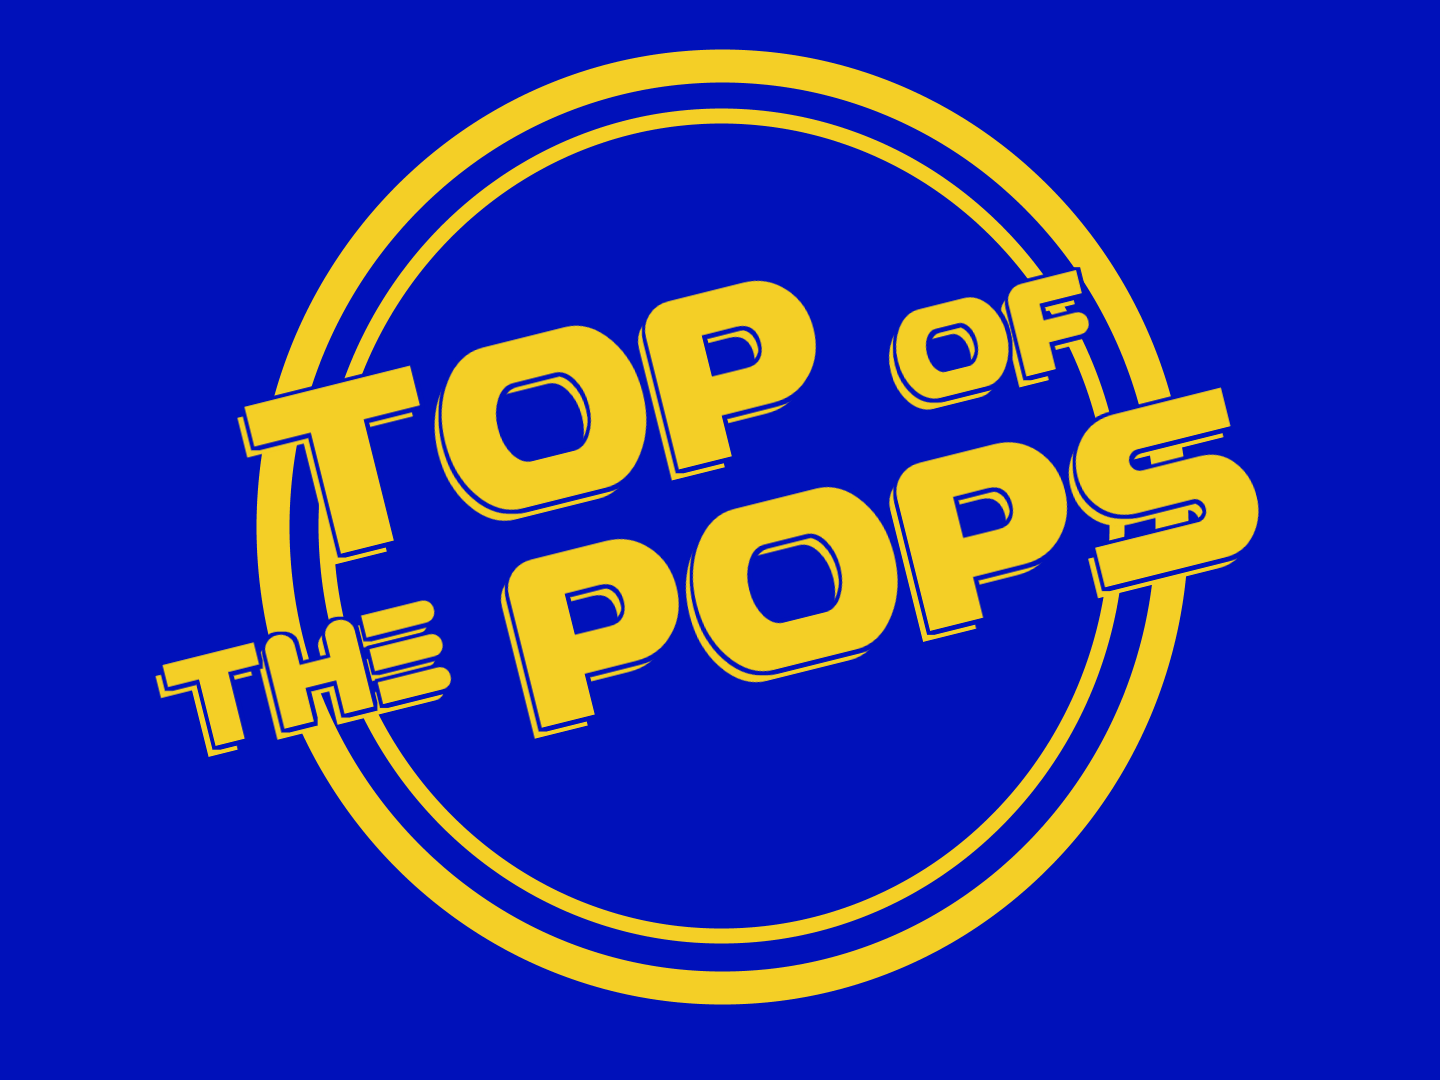 Top of the Pops (Anglosaw)